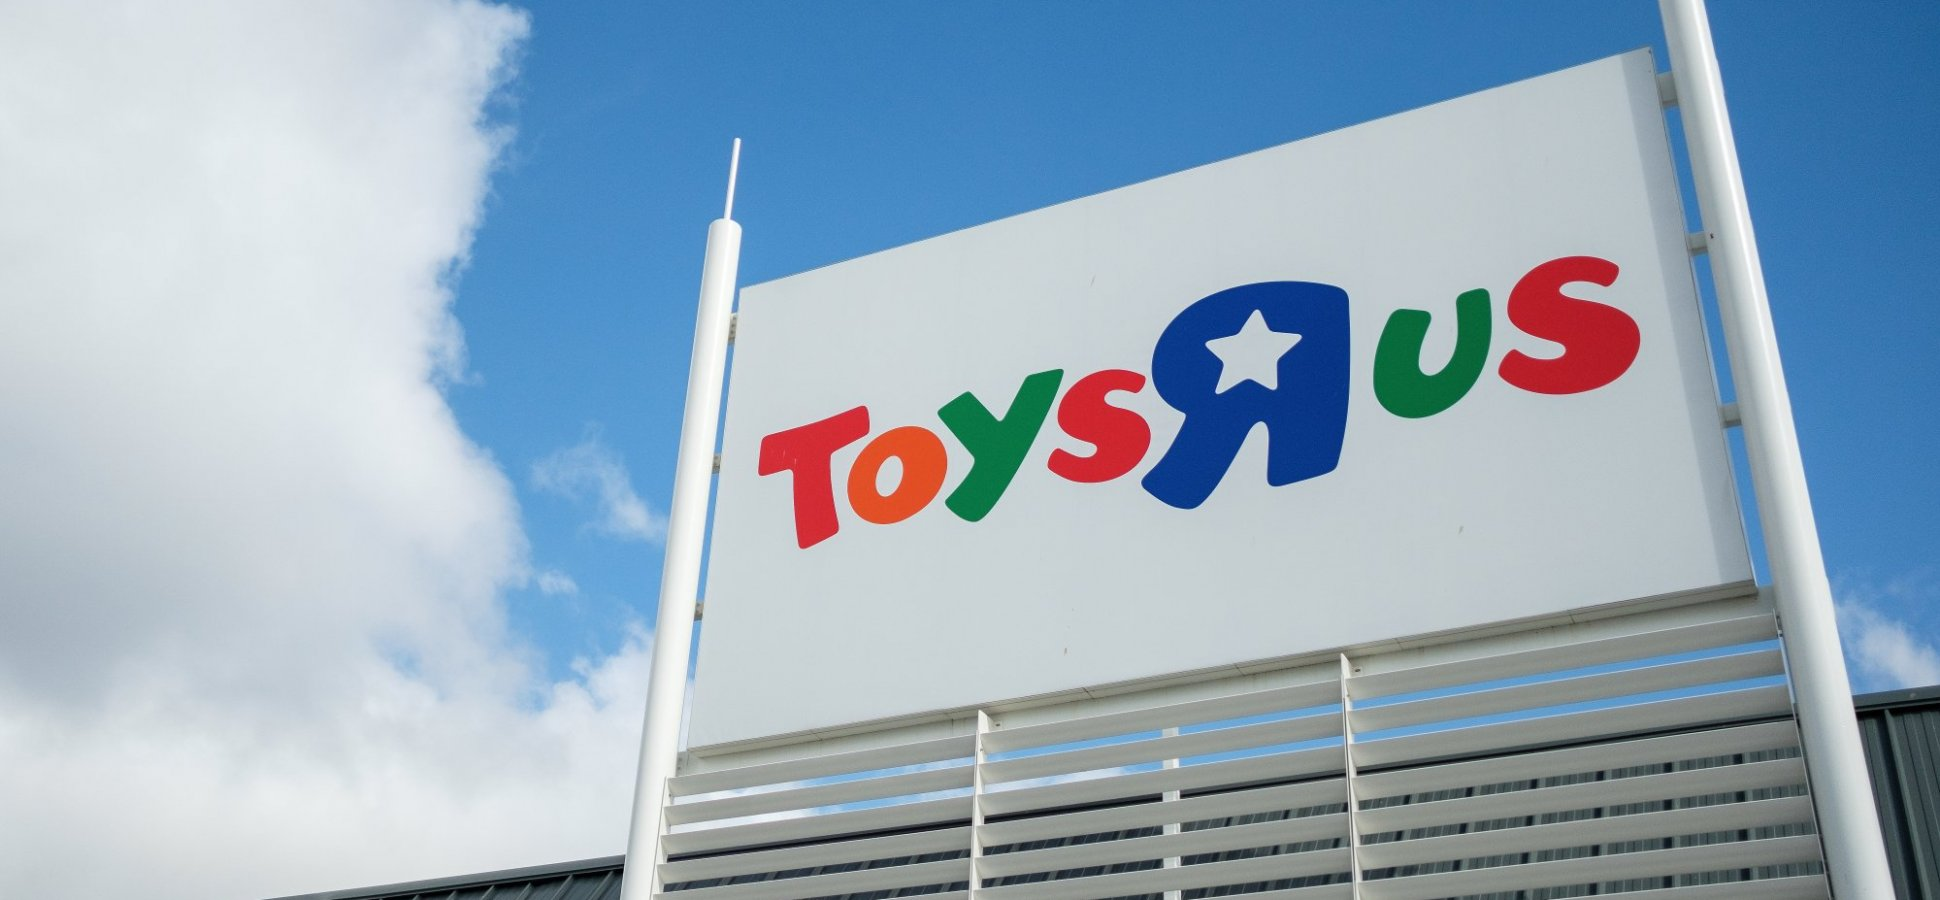 Toys 'R' Us Just Literally Came Back From the Dead. Here's the Ridiculously Ironic Detail You Couldn't Make Up If You Tried